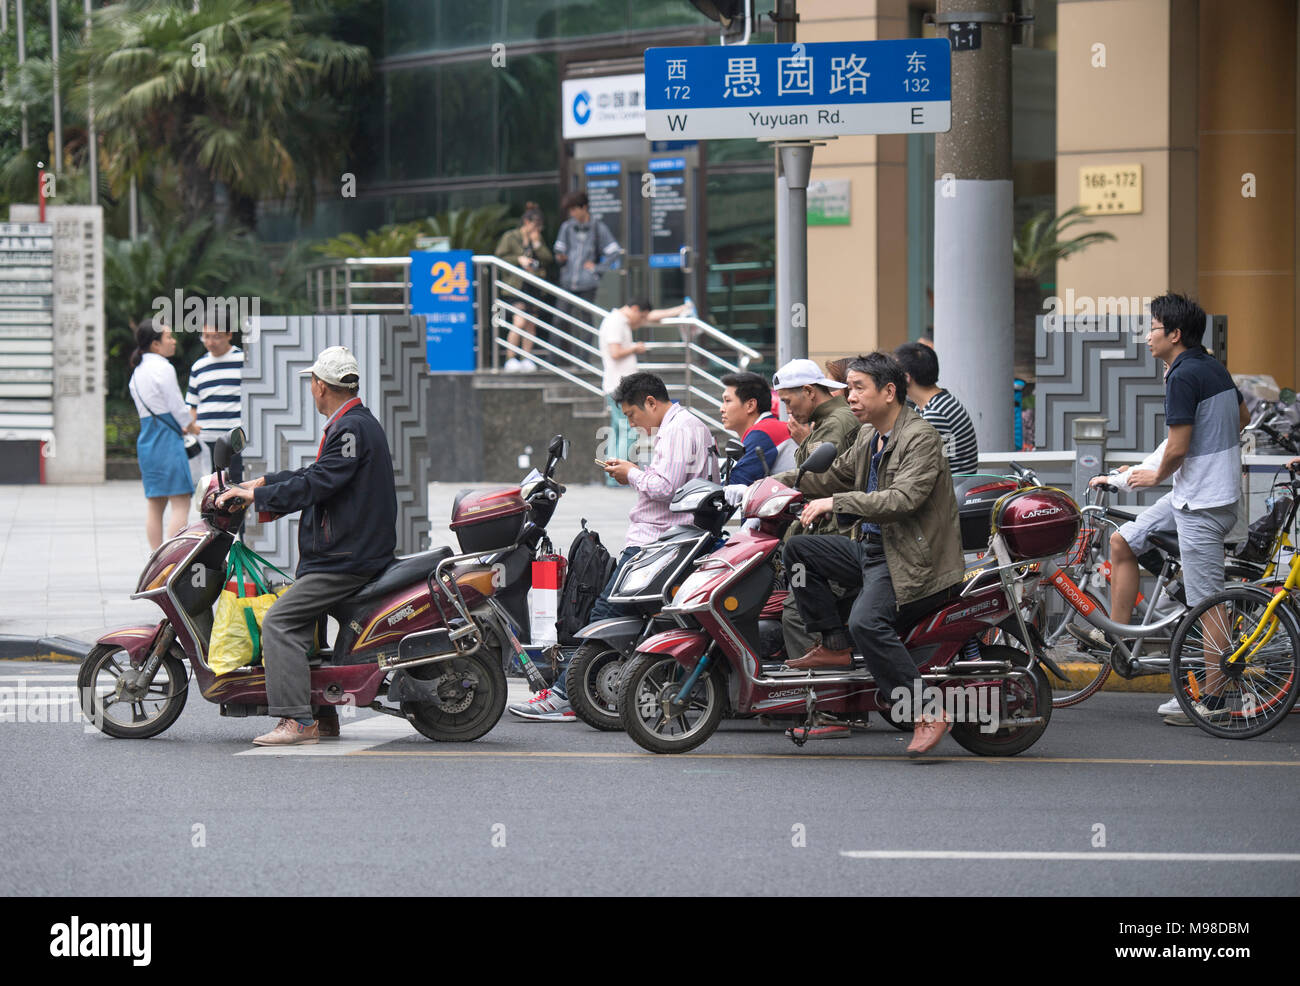 People riding bikes and scooters on the streets on Shanghai in China - Stock Image